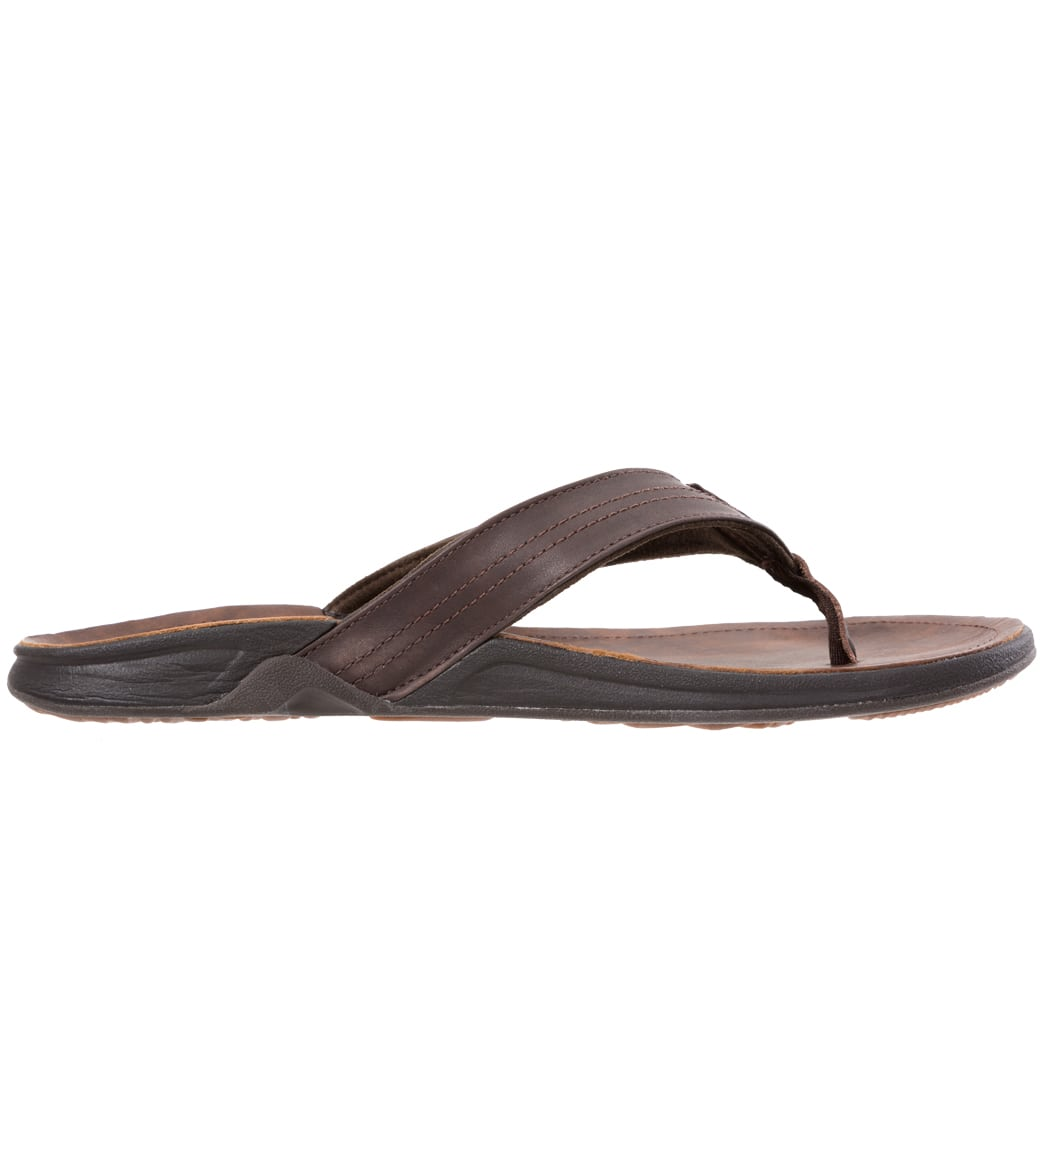 0dfc1ef6f Reef Men s J-Bay III Flip Flop at SwimOutlet.com - Free Shipping